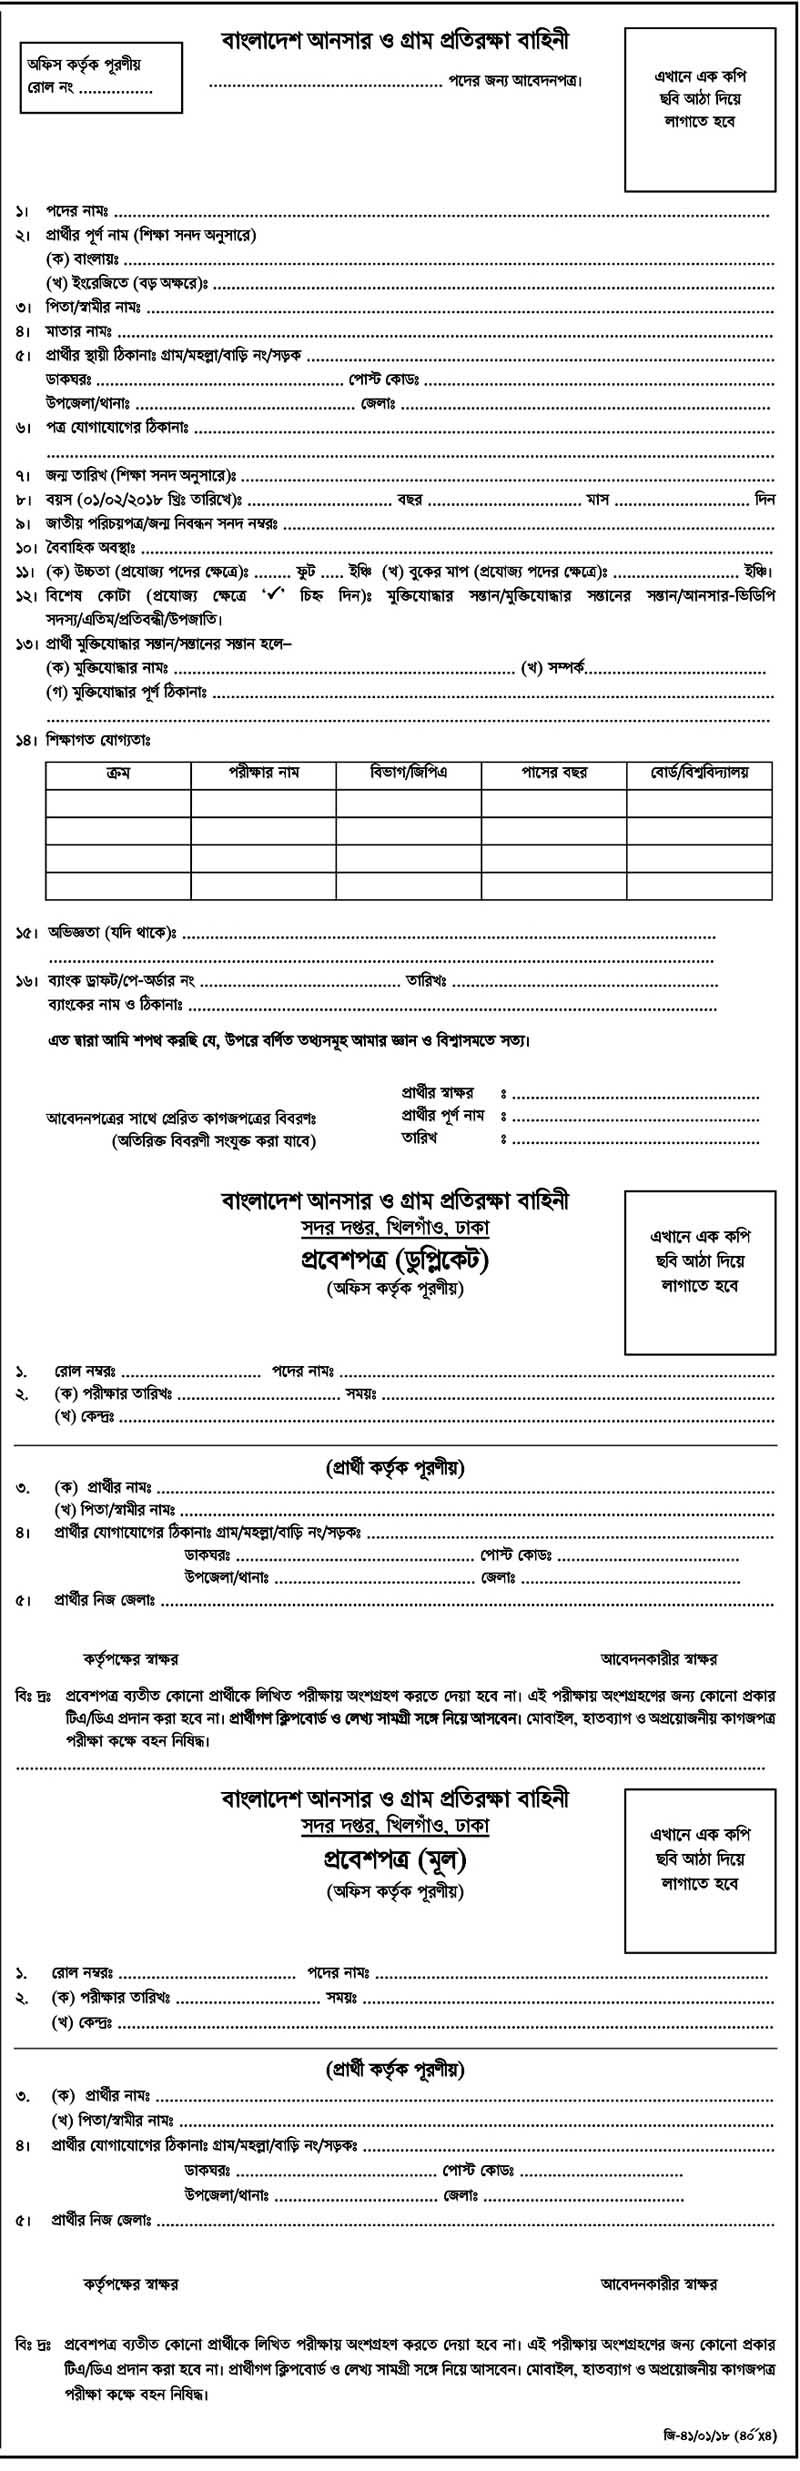 Bangladesh Ansar Vdp Job Application Form  Pijus